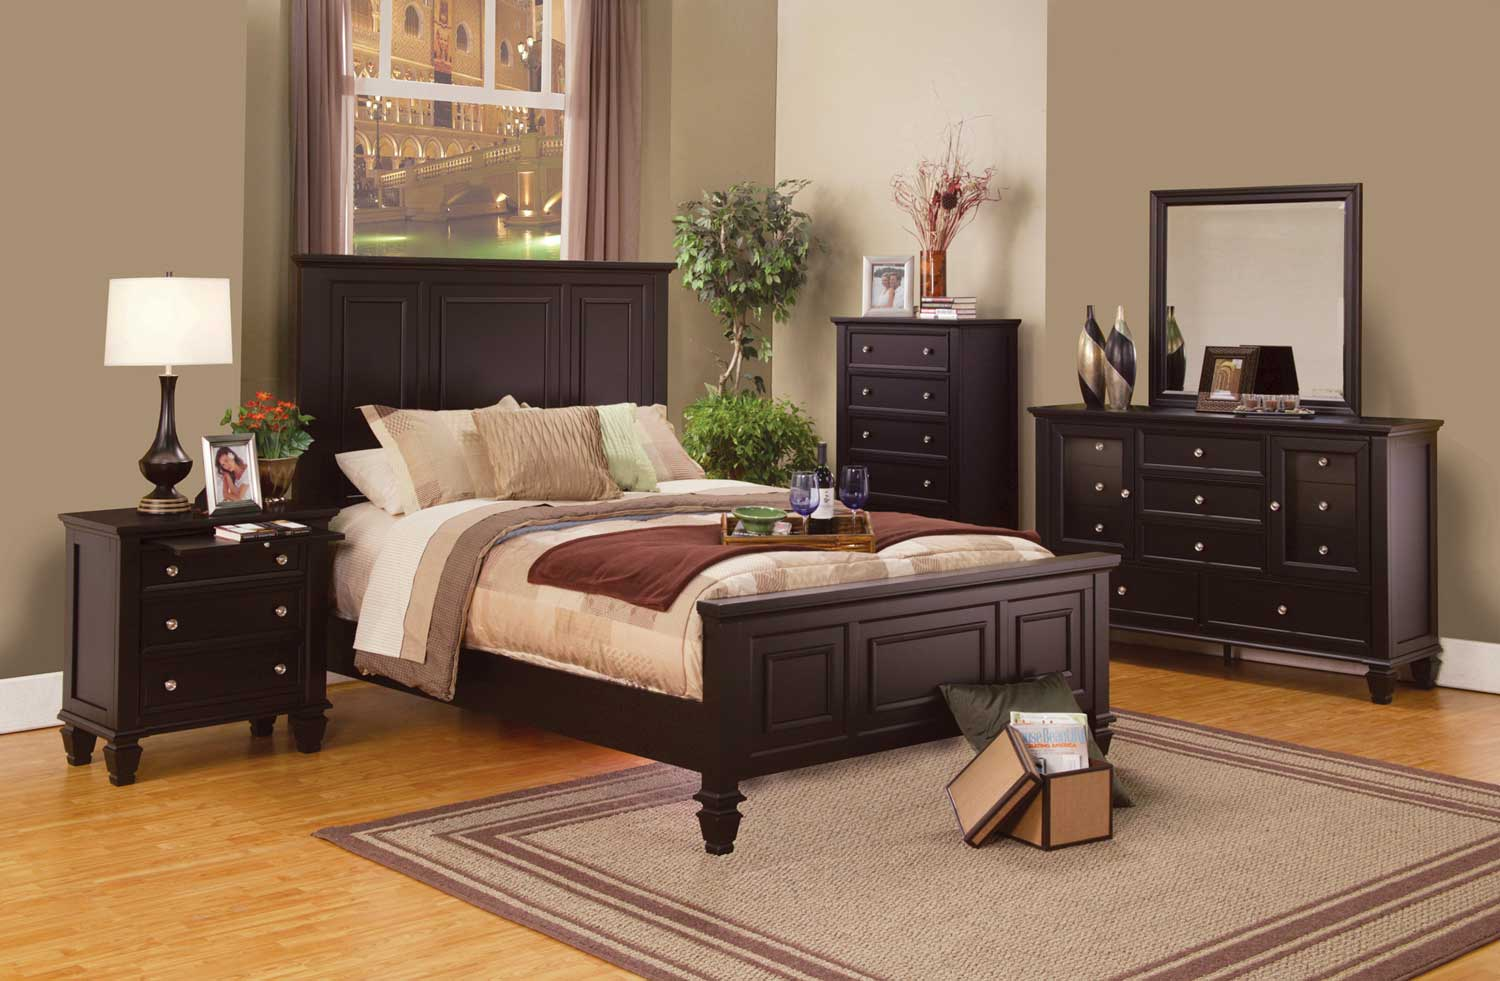 Coaster Sandy Beach Panel Bedroom Set Cappuccino 201991 Panel BedSet At